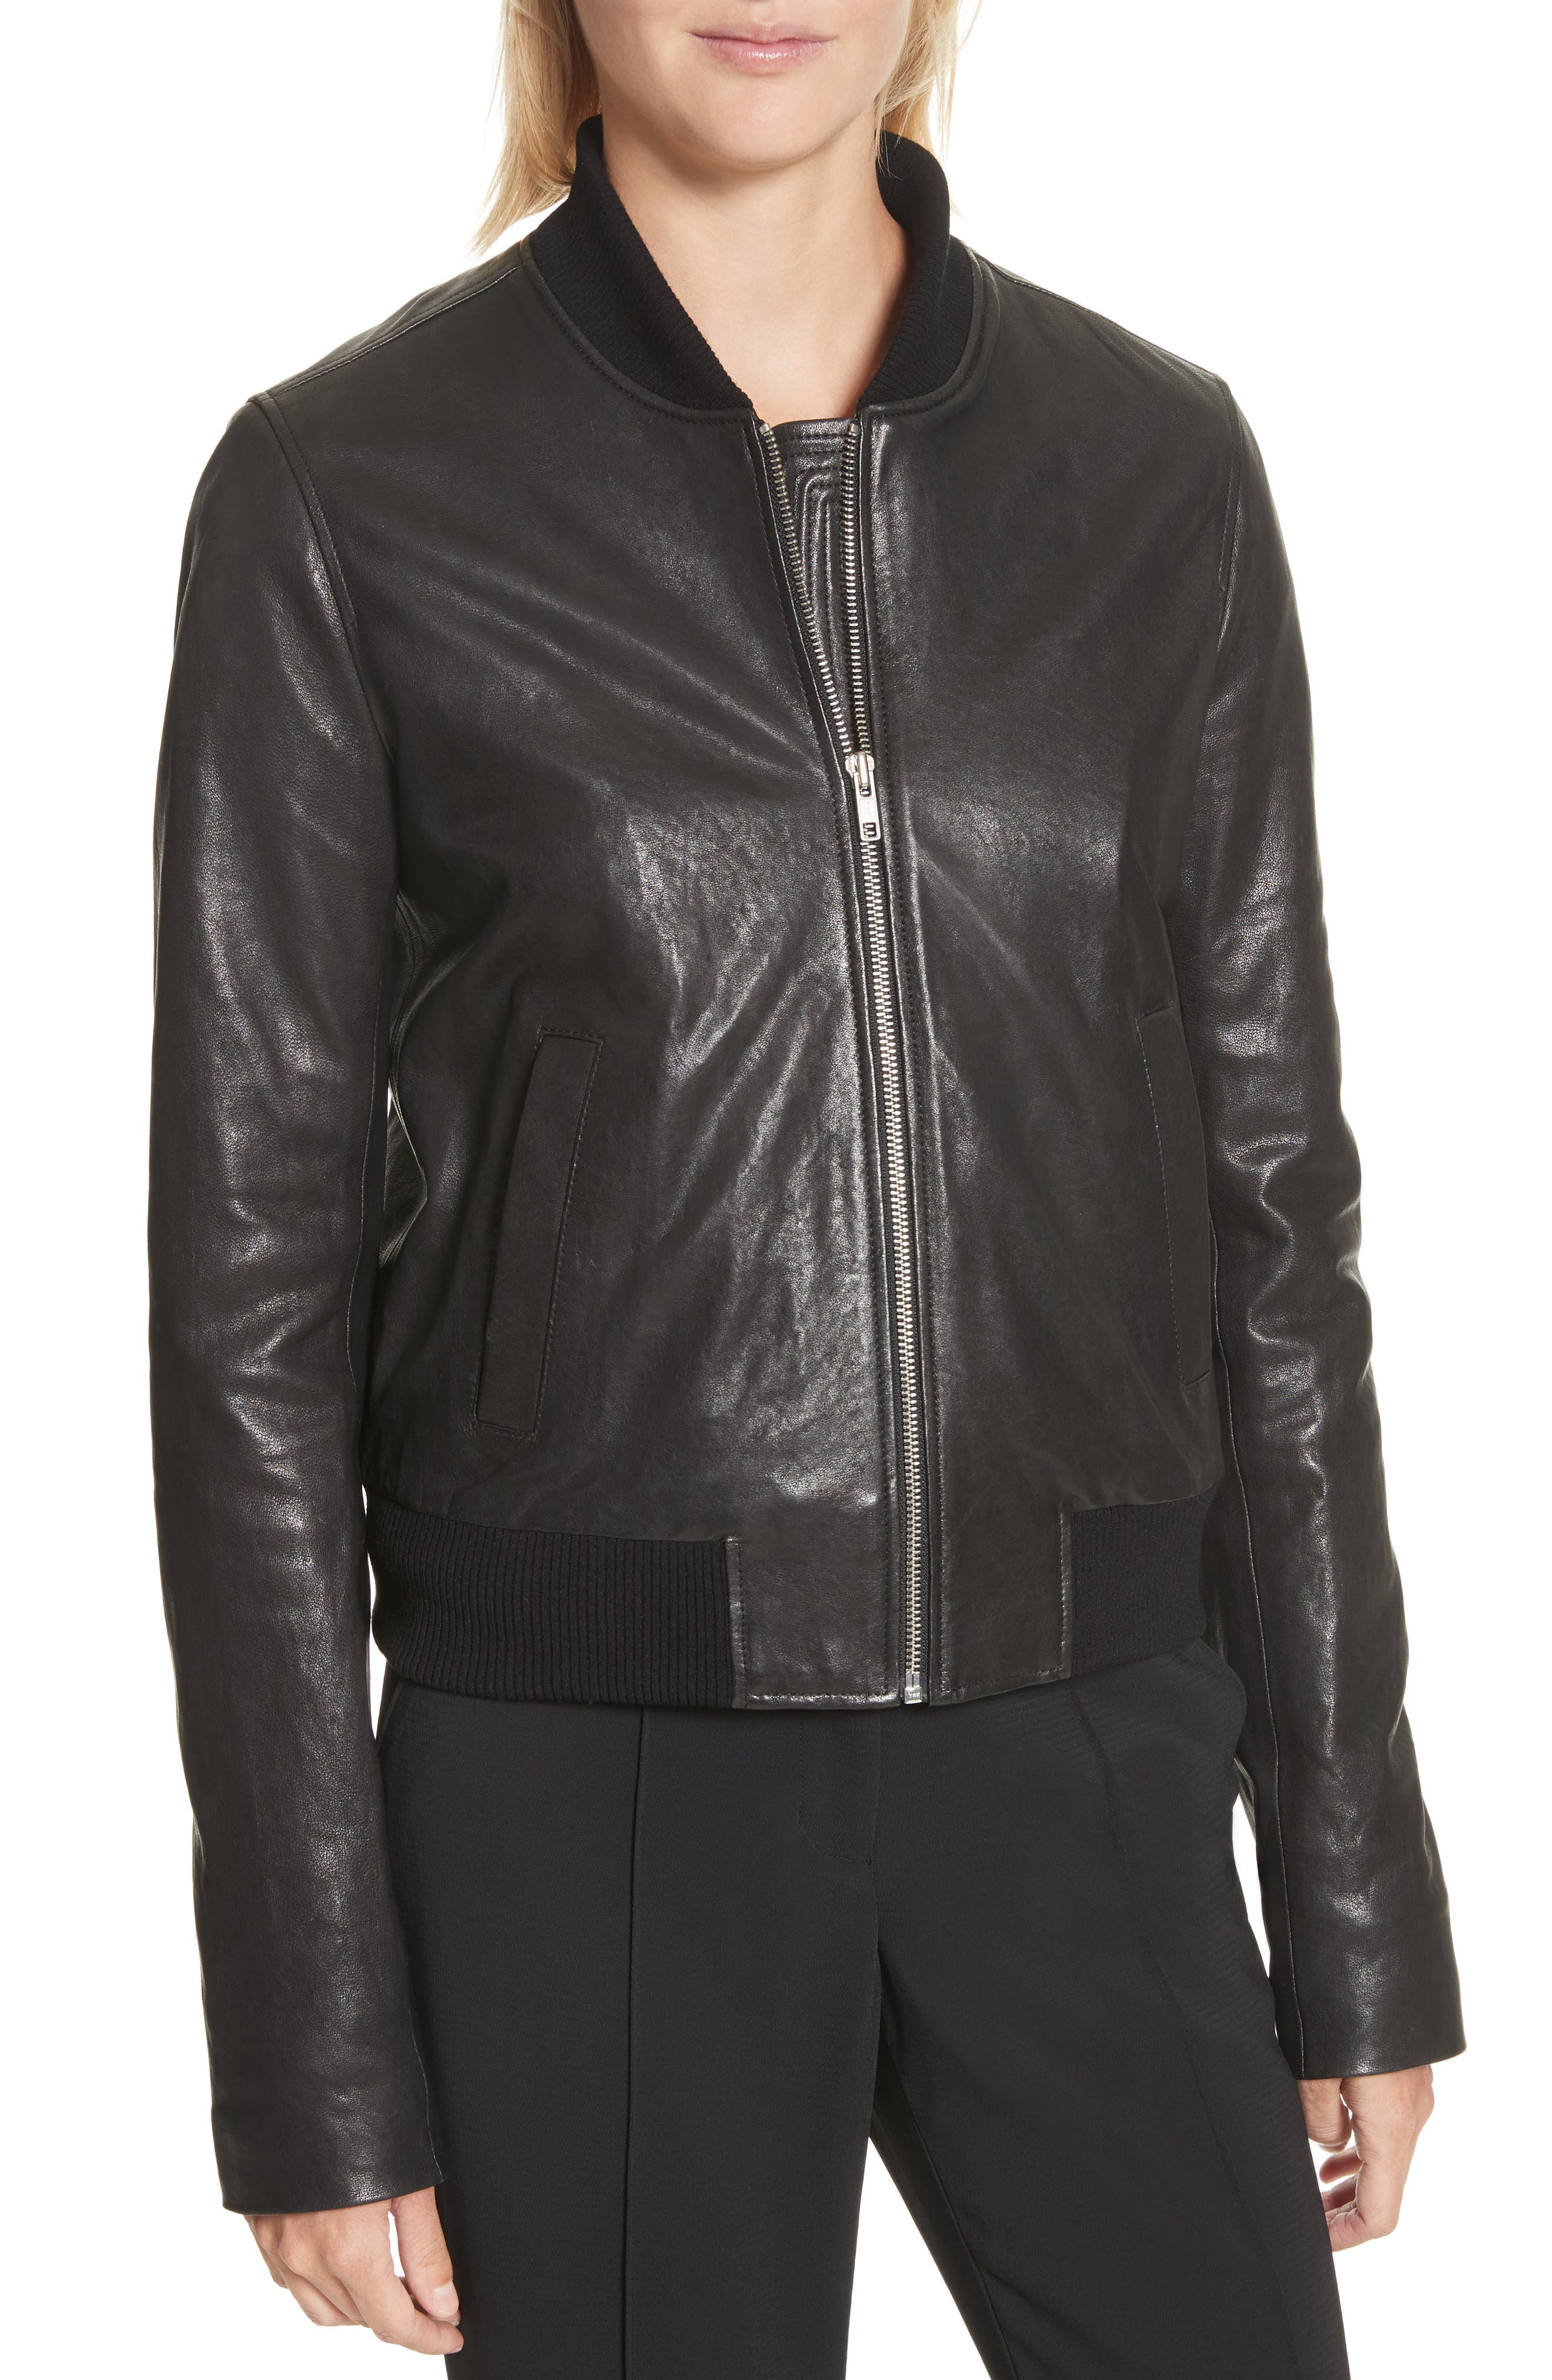 Edison Leather Jacket with Removable Hooded Inset,                             Alternate thumbnail 5, color,                             Black